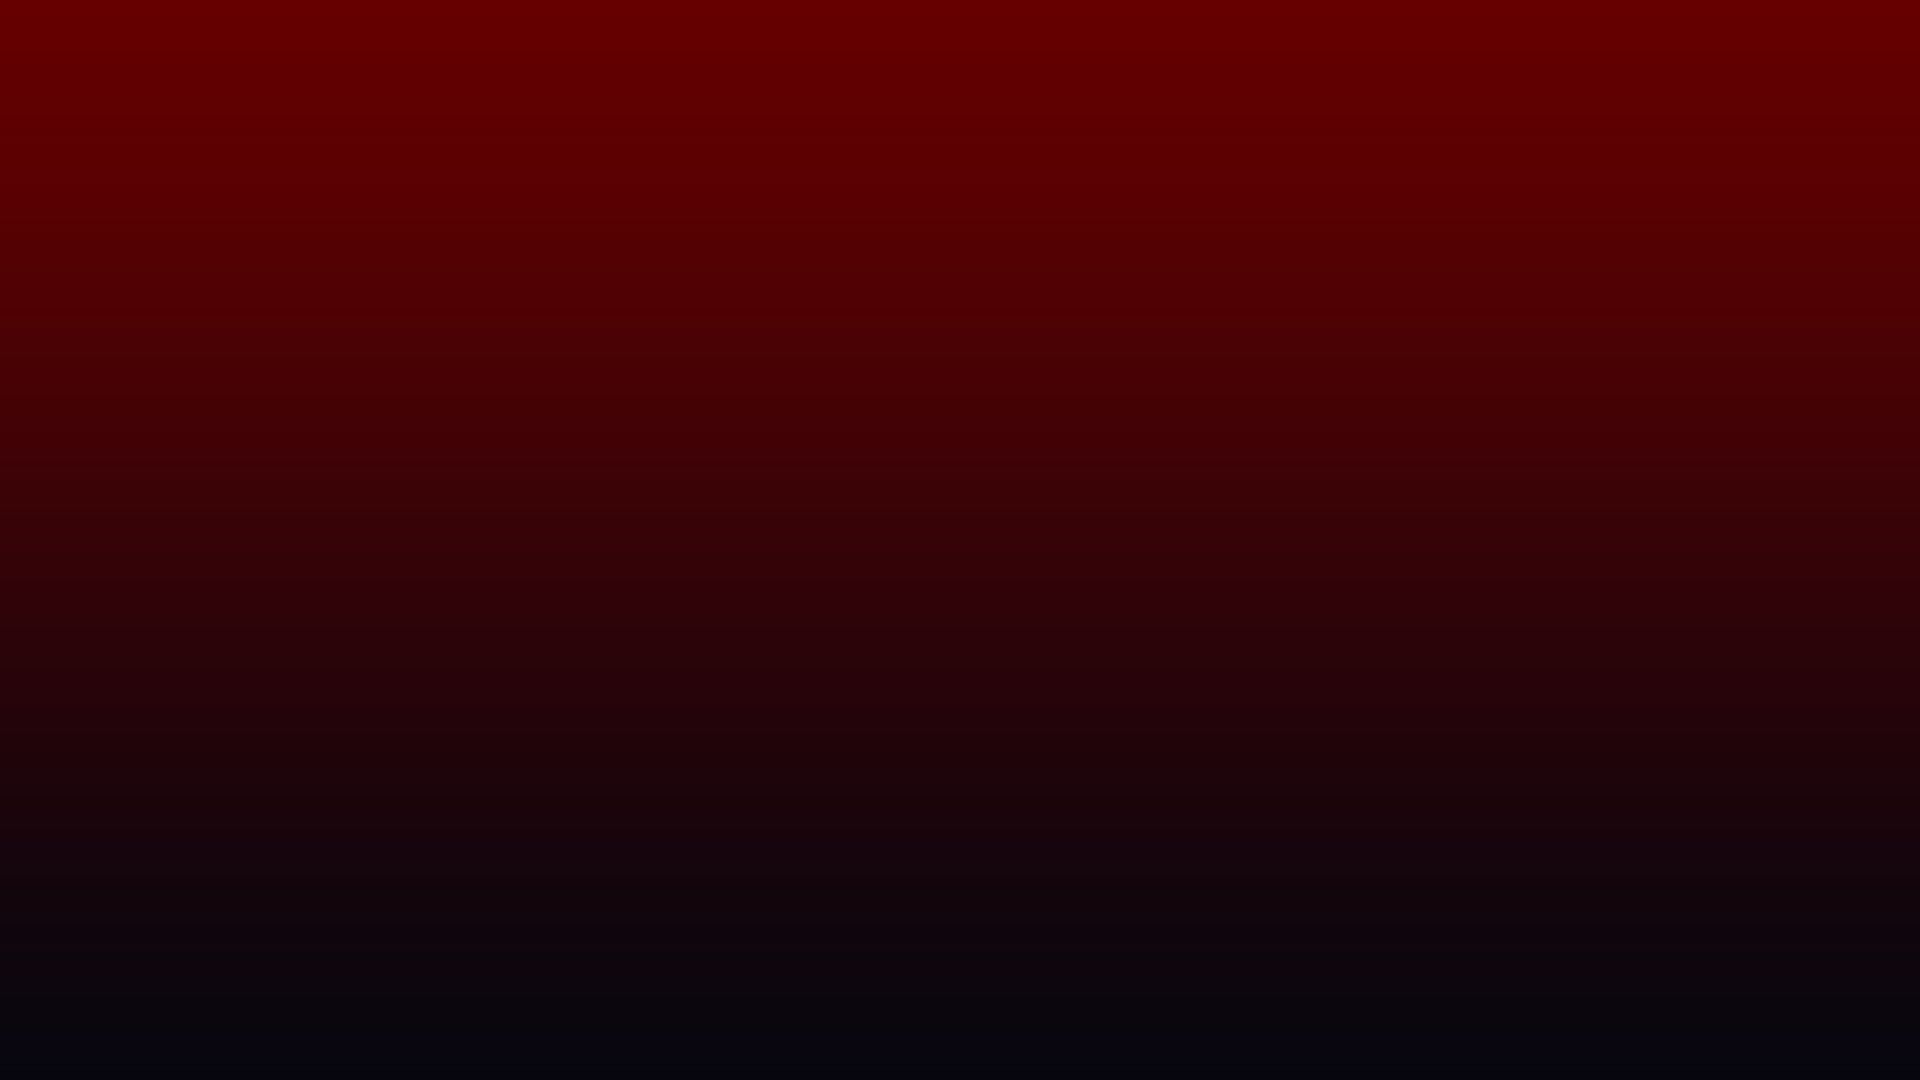 Red To Black Dark Red And Black Gradient Wallpaper 63437 65518 Hd Wallpapers Solid Color Backgrounds Duralee Labels Wall